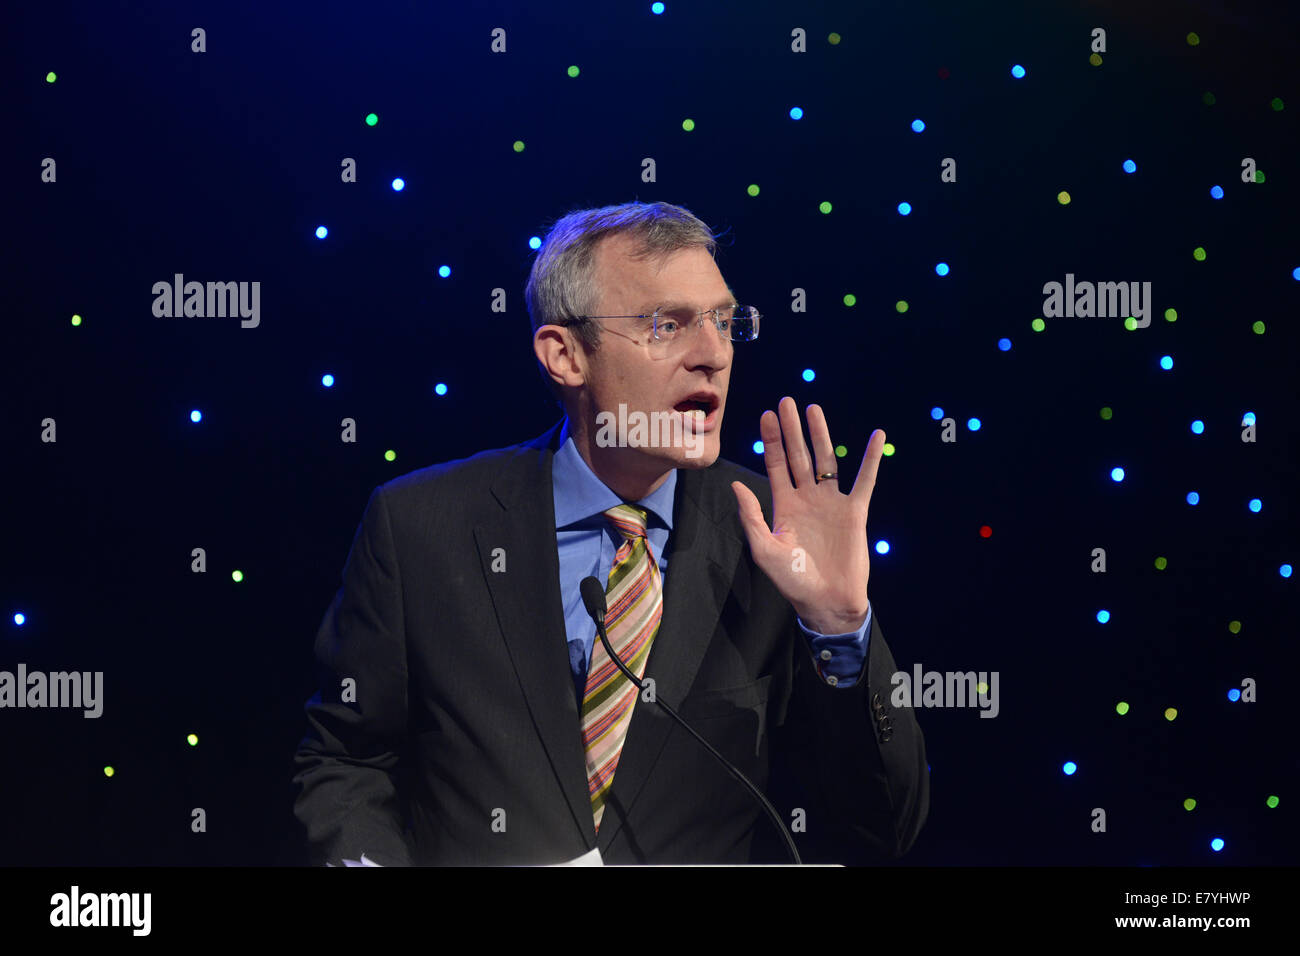 Jeremy Vine television & radio presenter - Stock Image